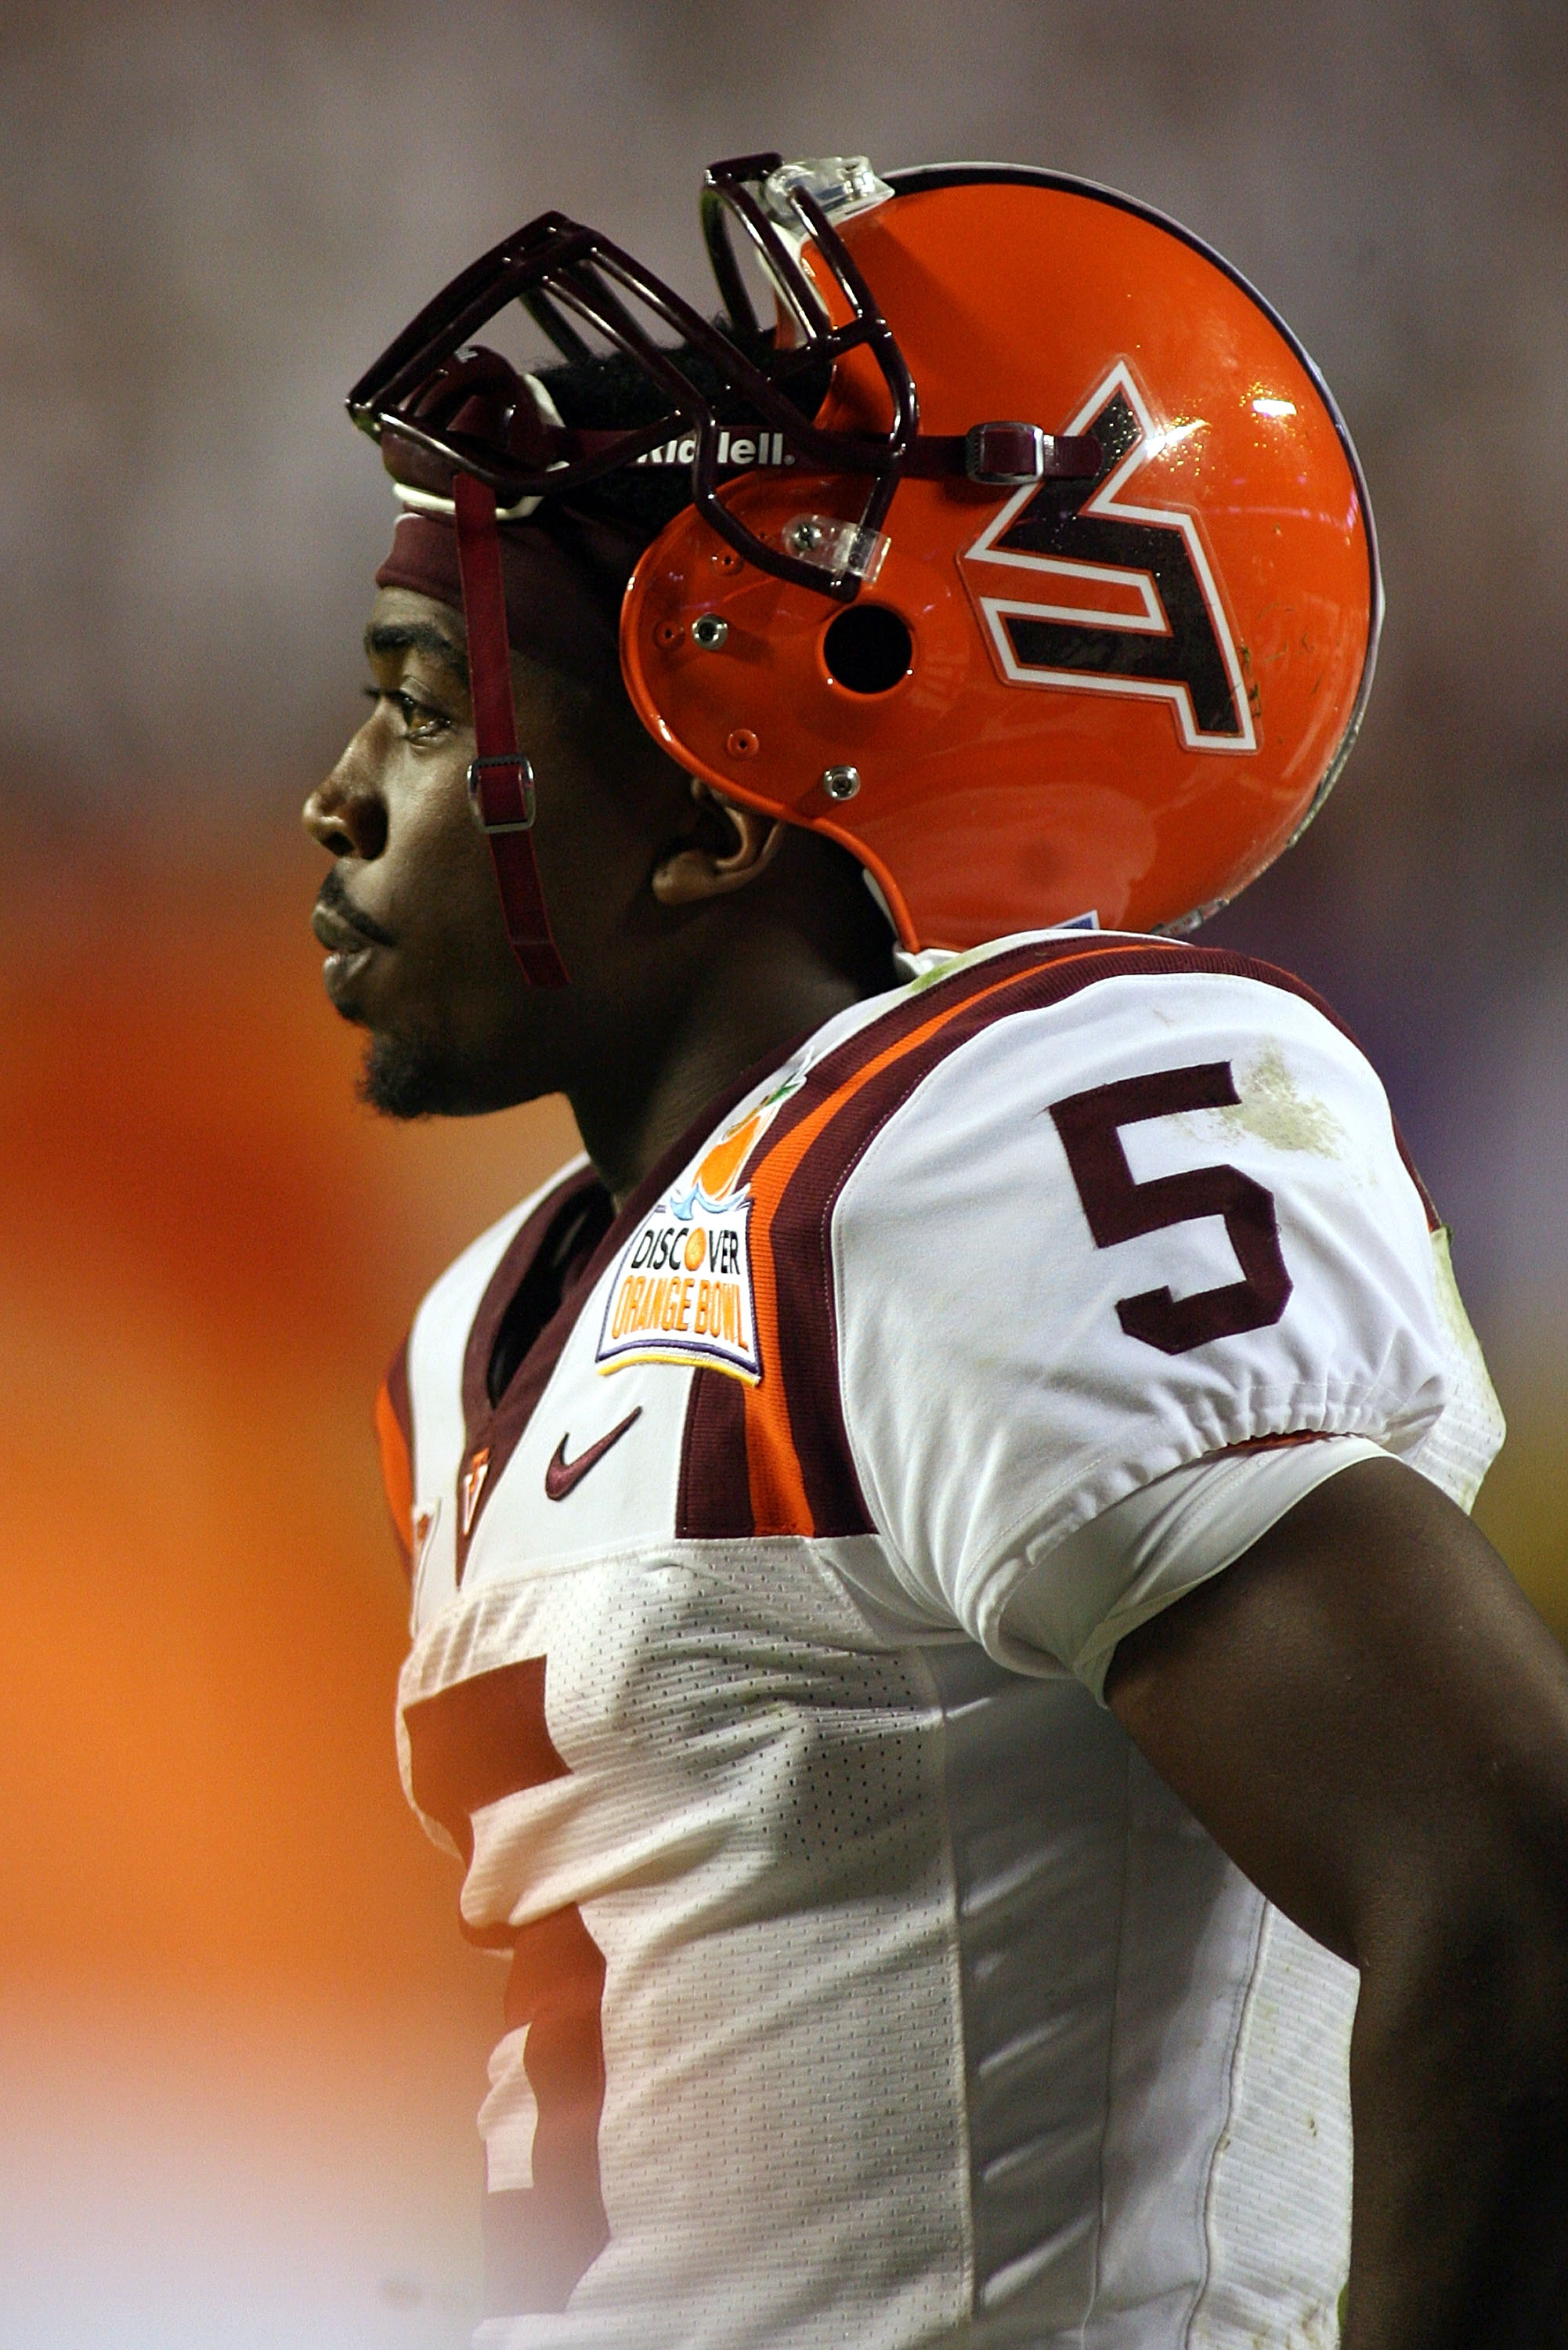 MIAMI, FL - JANUARY 03:  Tyrod Taylor #5 of the Virginia Tech Hokies looks on against the Stanford Cardinal during the 2011 Discover Orange Bowl at Sun Life Stadium on January 3, 2011 in Miami, Florida. Stanford won 40-12.  (Photo by Marc Serota/Getty Ima